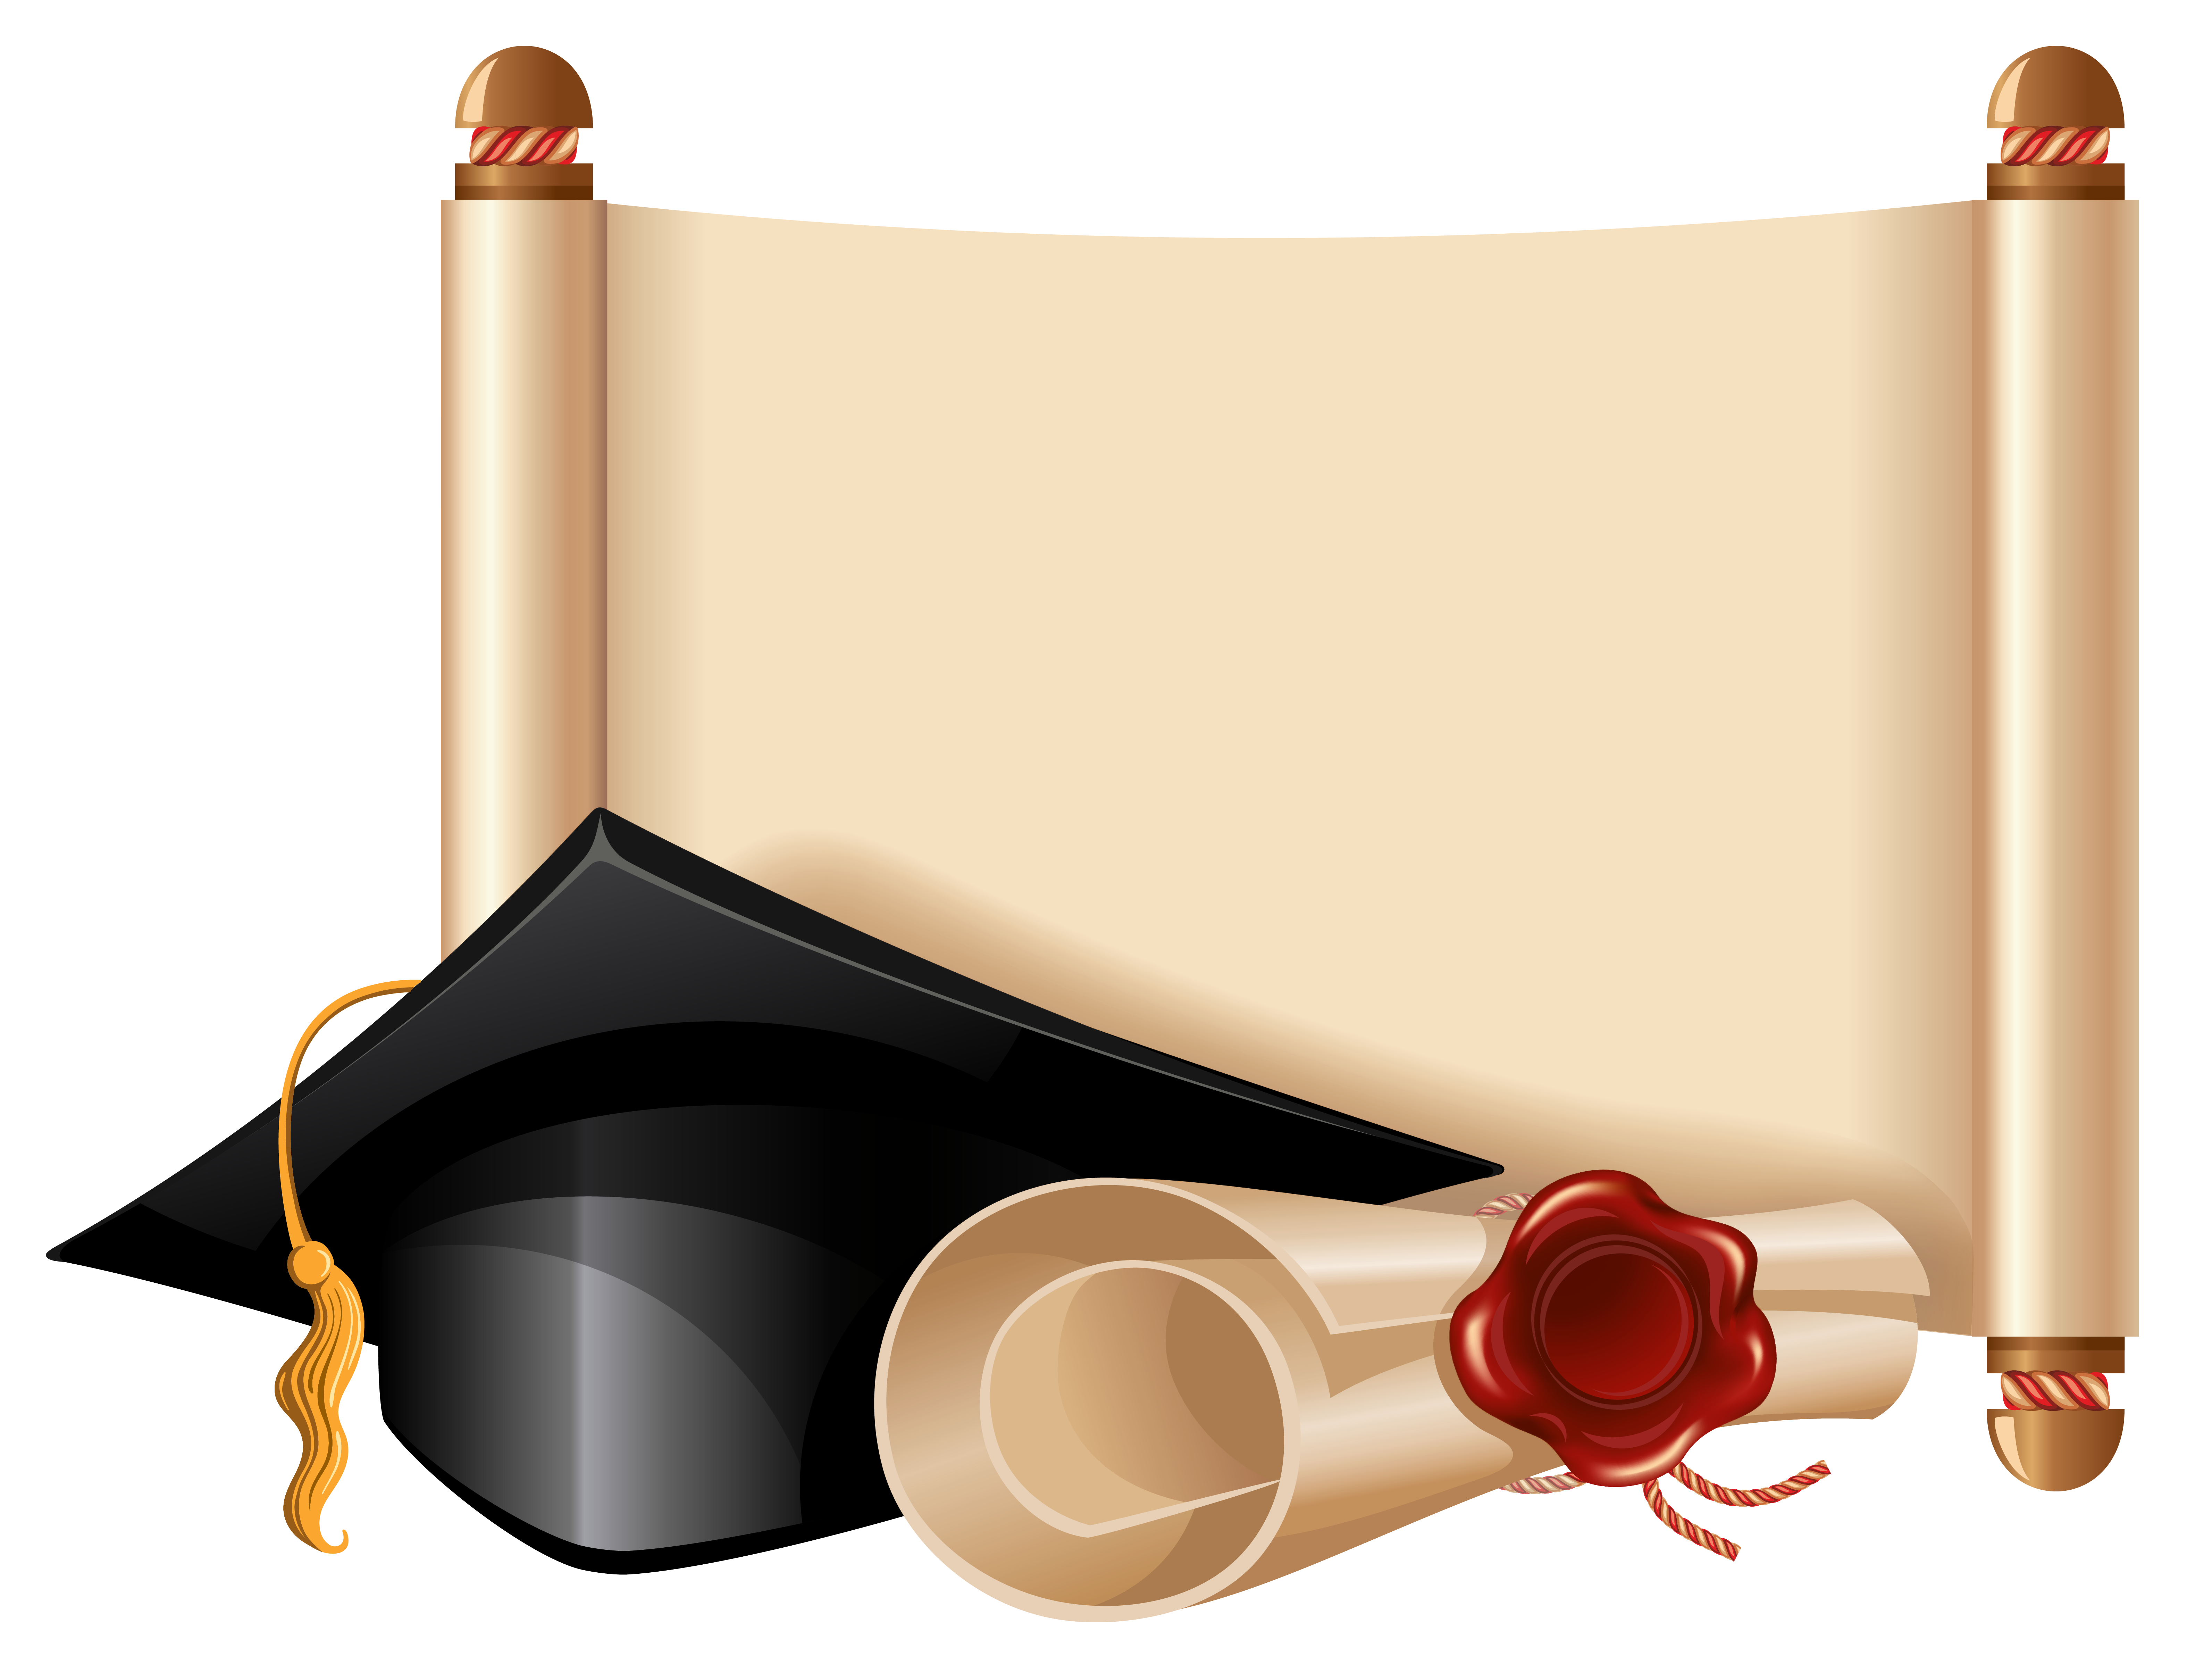 Diploma And Graduation Cap Png Clipart Picture Tarjetas De Graduacion Tarjetas De Grado Tarjetas